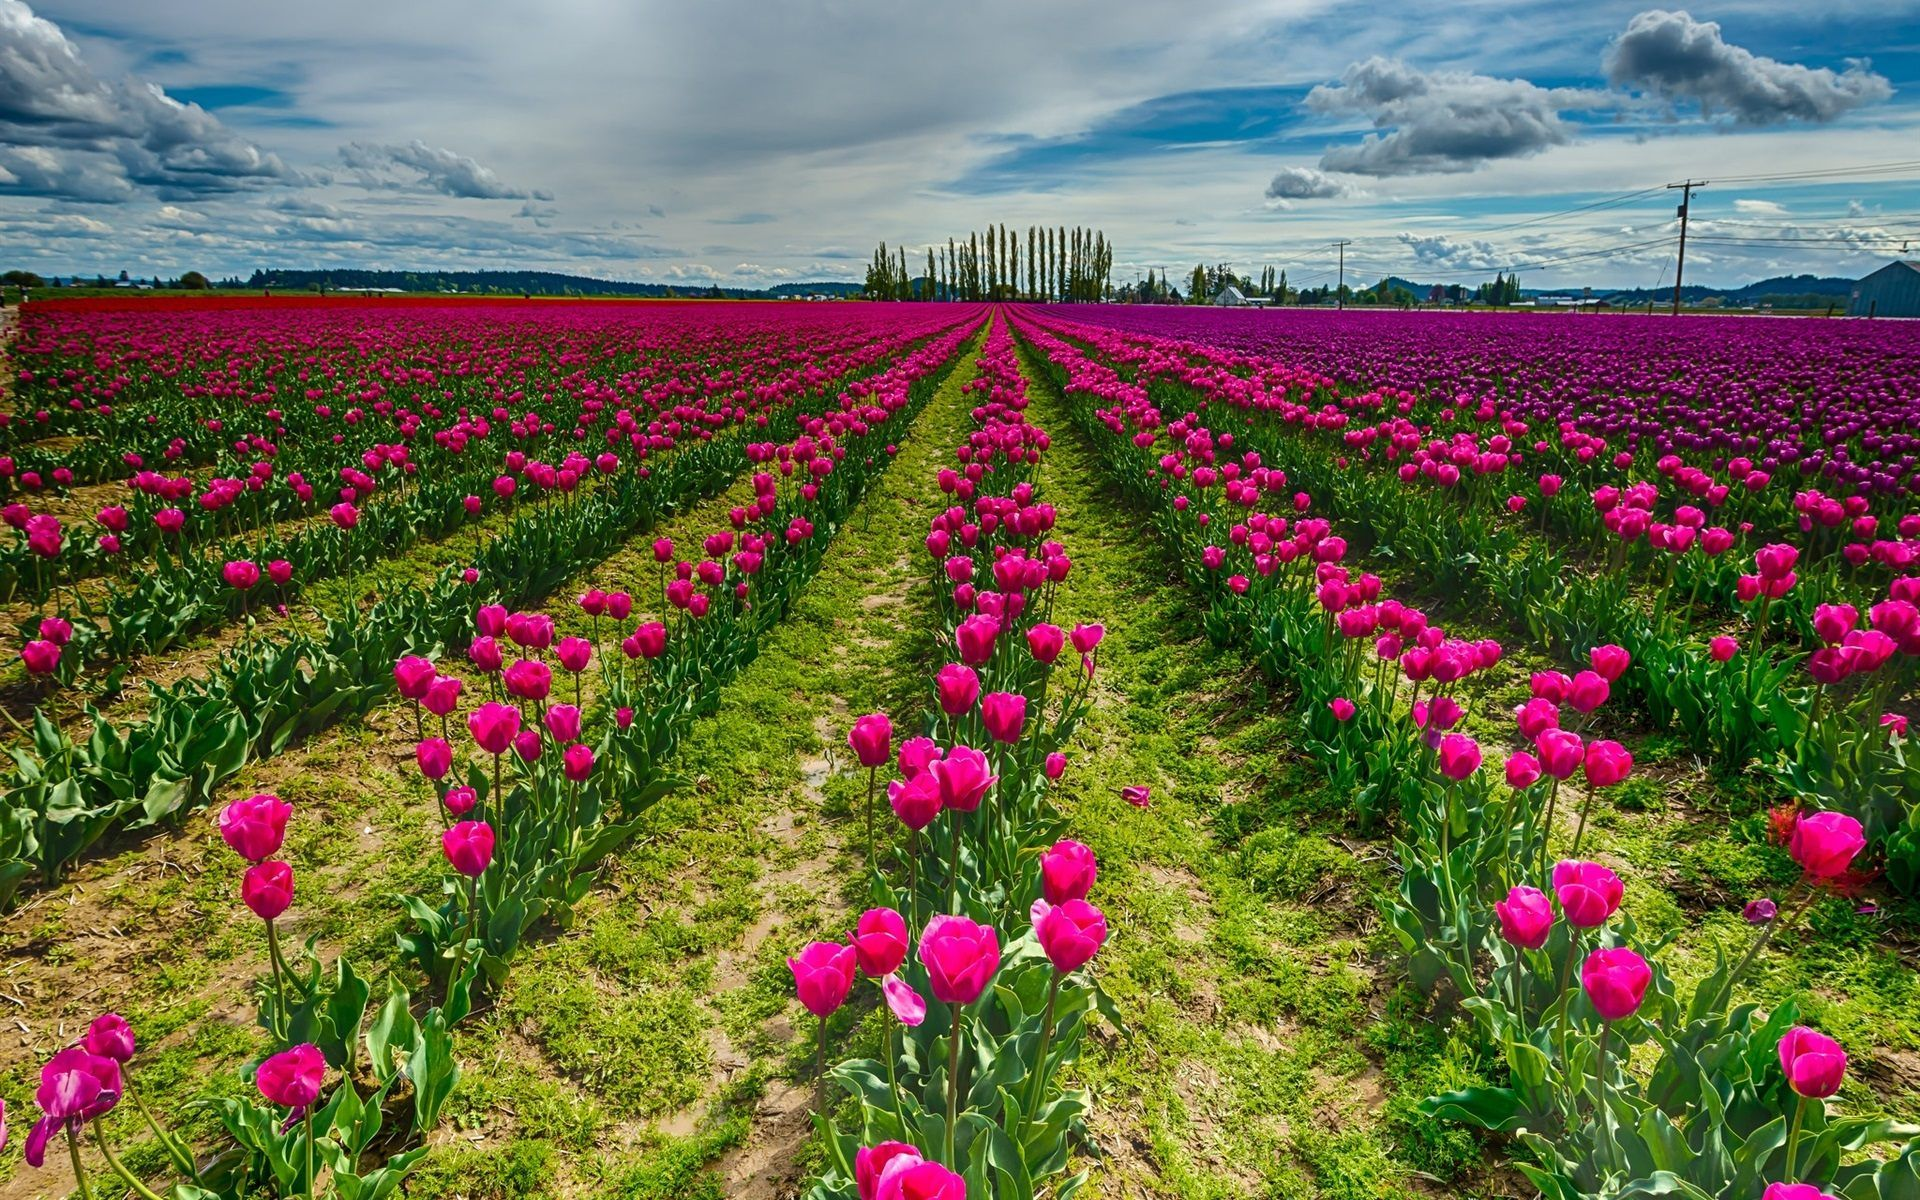 Red Tulip Flower Field Wallpaper For Desktop And Mobile In High Resolution Download We Have